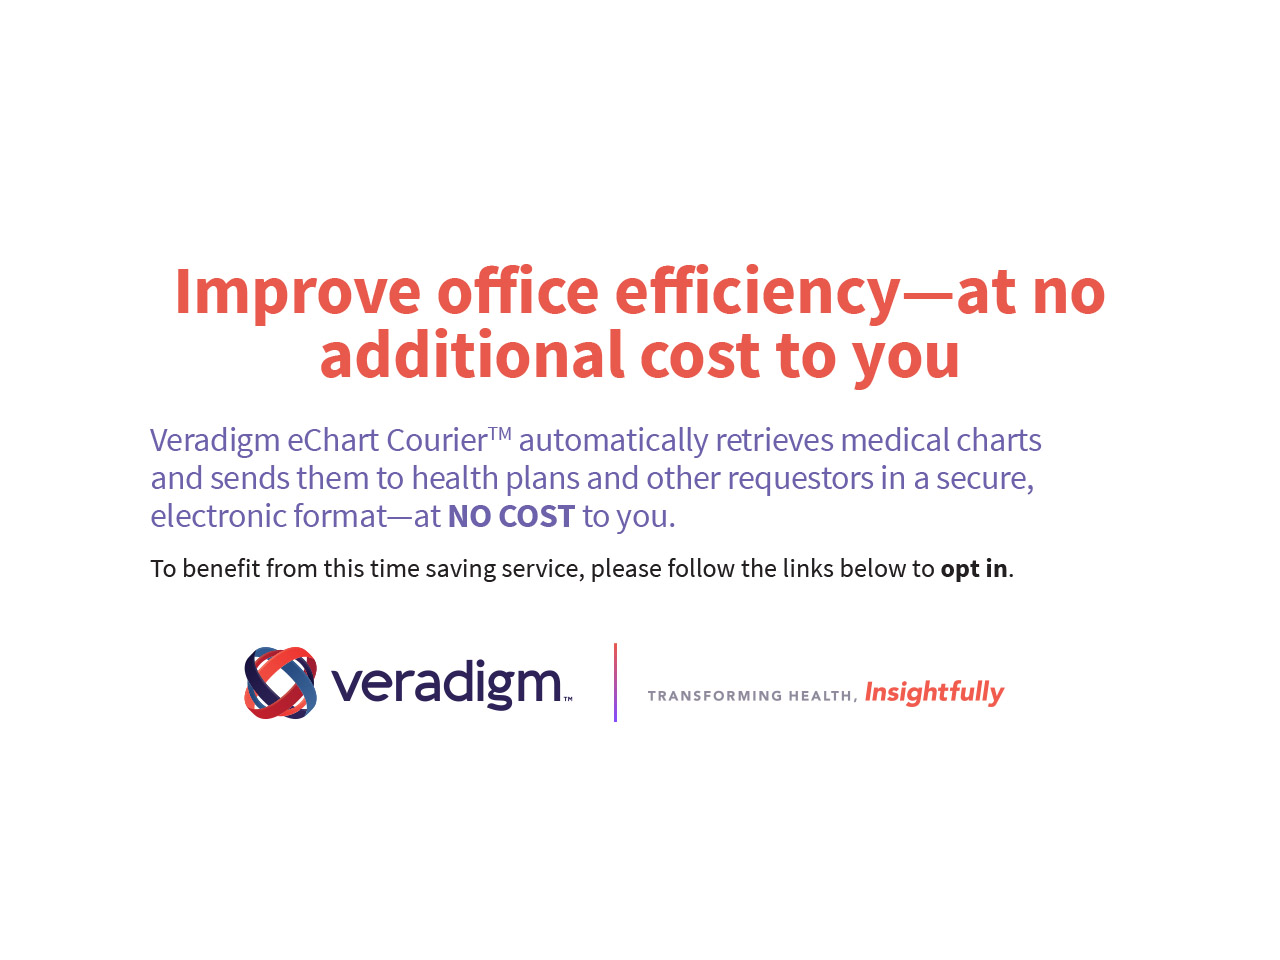 Improve office efficient - at no additional cost to you. Veradigm eChart Courier automatically retrieves medical charts and sends them to health plans and other requestors in a secure, electronic format - at no cost to you. To benefit fro mthis time saving service, please follow the links below to opt in.